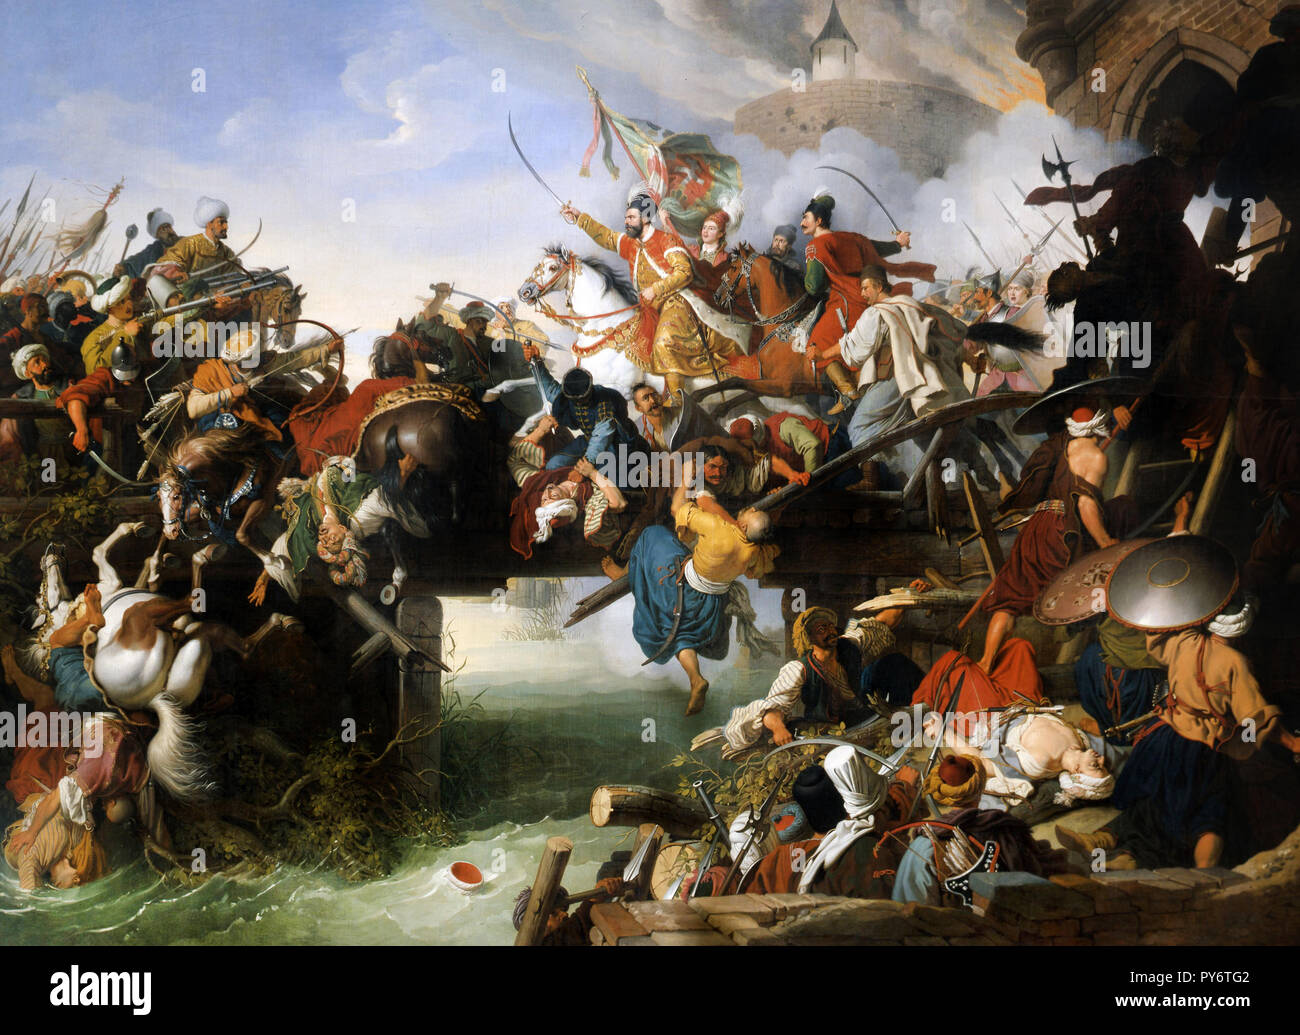 Peter Krafft, Zrínyi's Charge From the Fortress of Szigetvar 1825 Oil on canvas, Hungarian National Gallery, Budapest, Budapest. Stock Photo